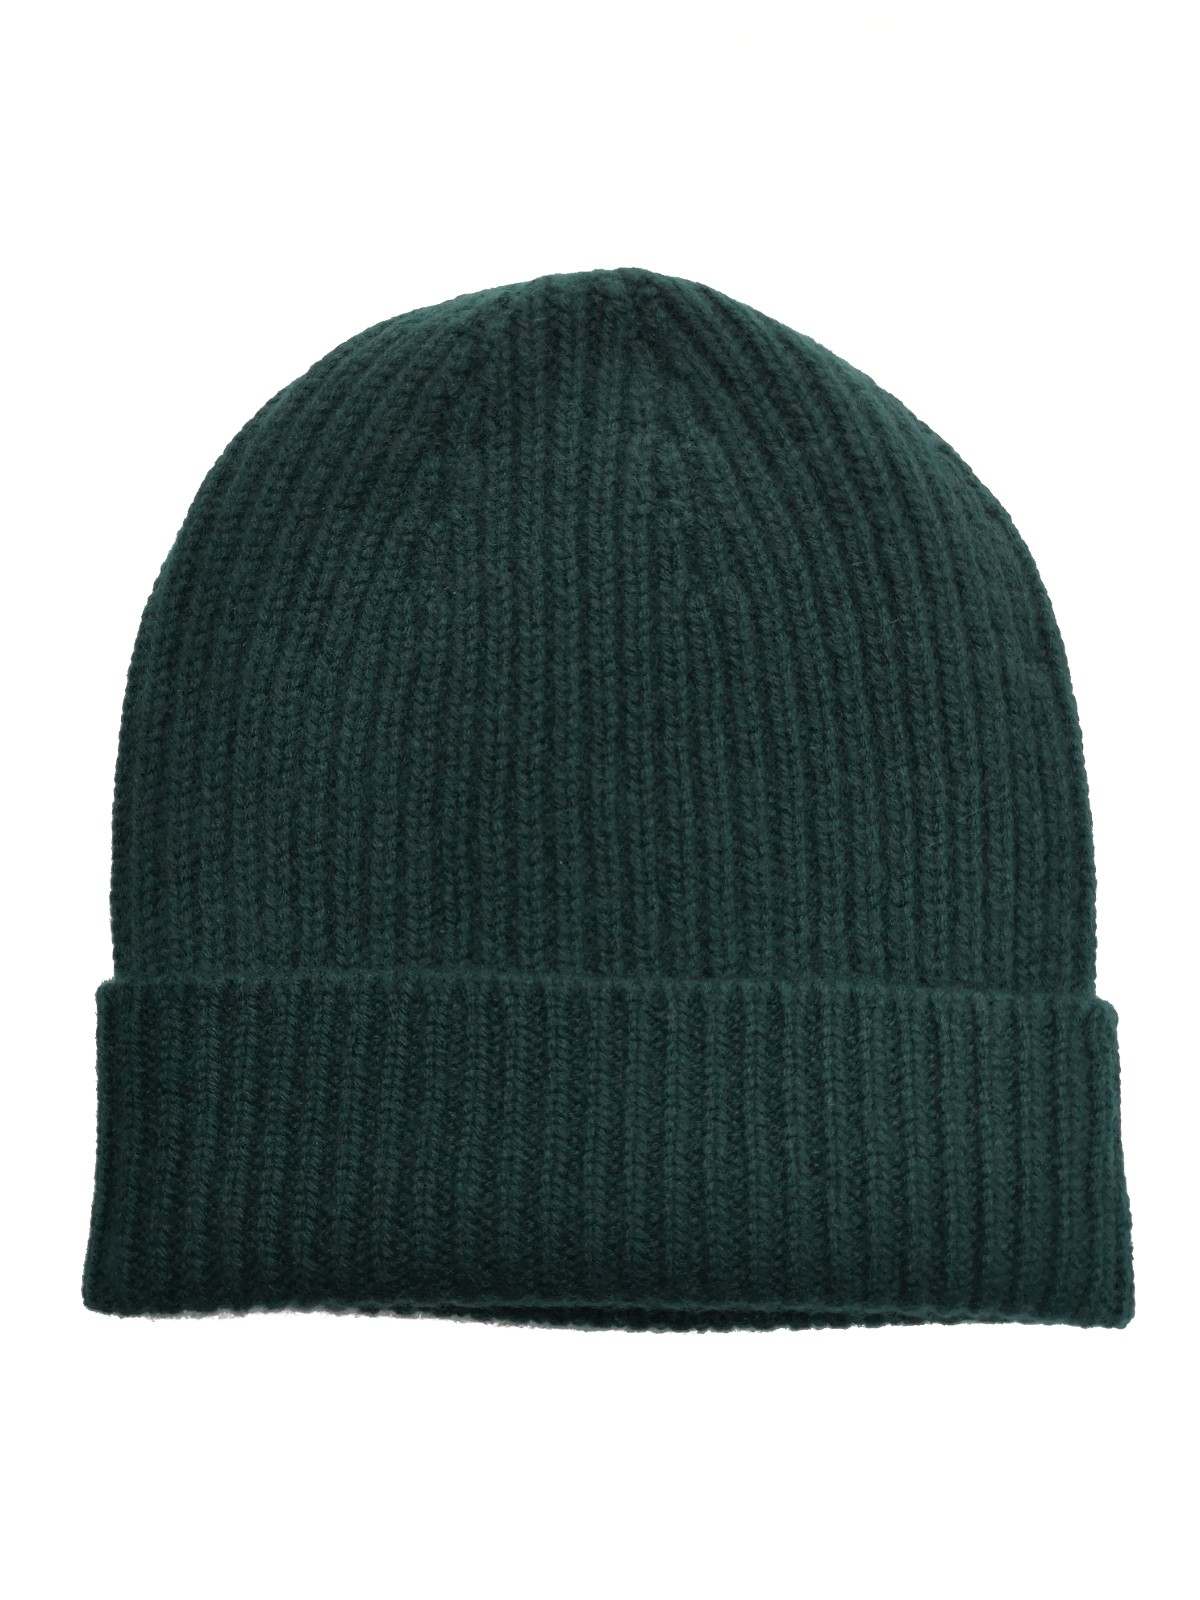 The Wardrobe Beanie